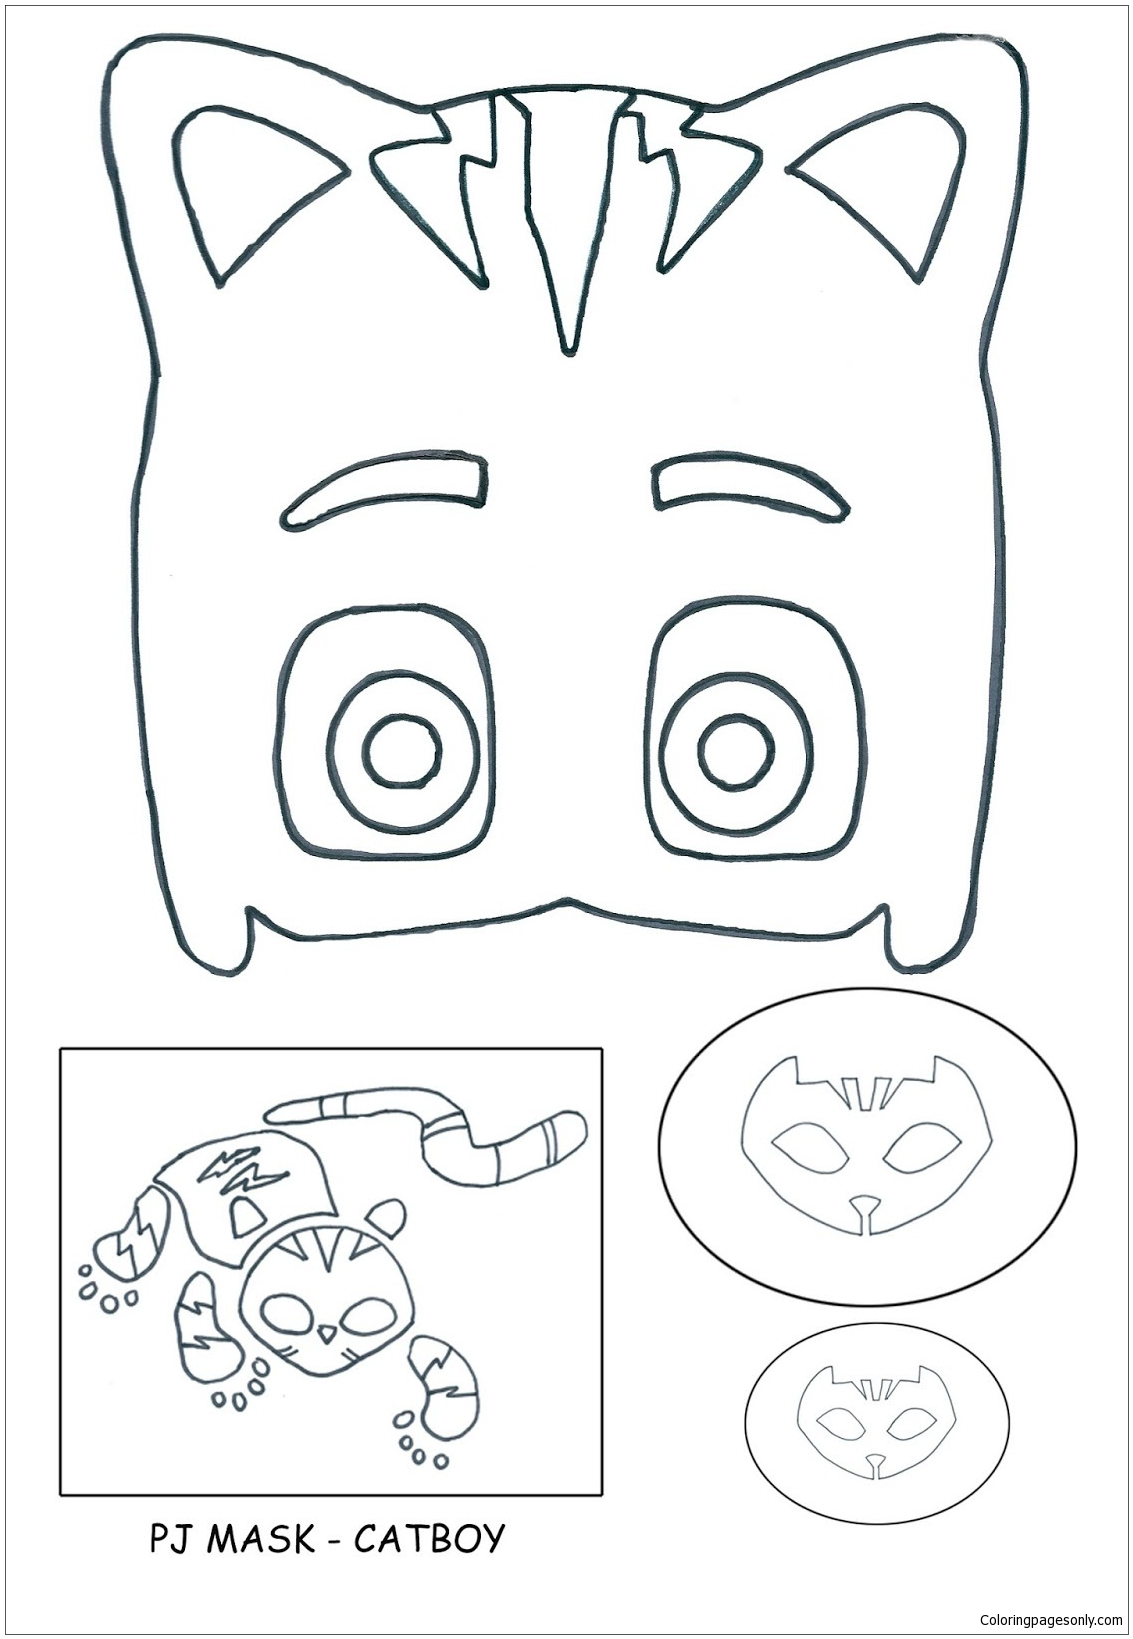 Pj Masks - Catboy Coloring Page - Free Coloring Pages Online